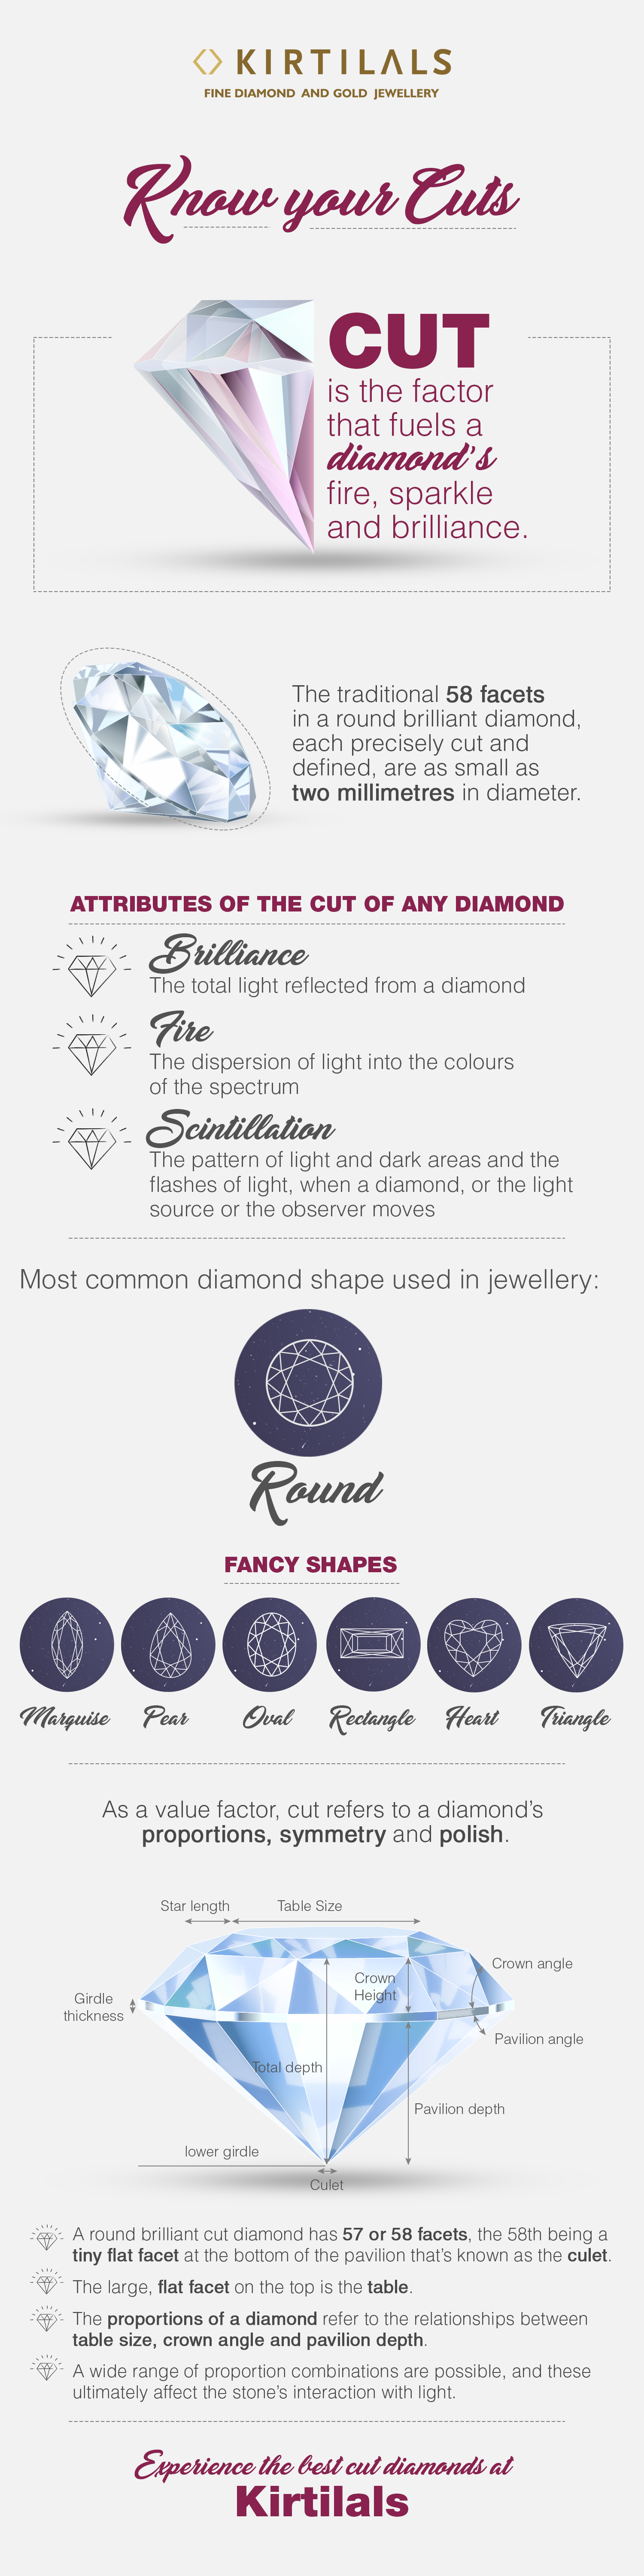 5 Things That Make Jewelry Pieces More Enticing